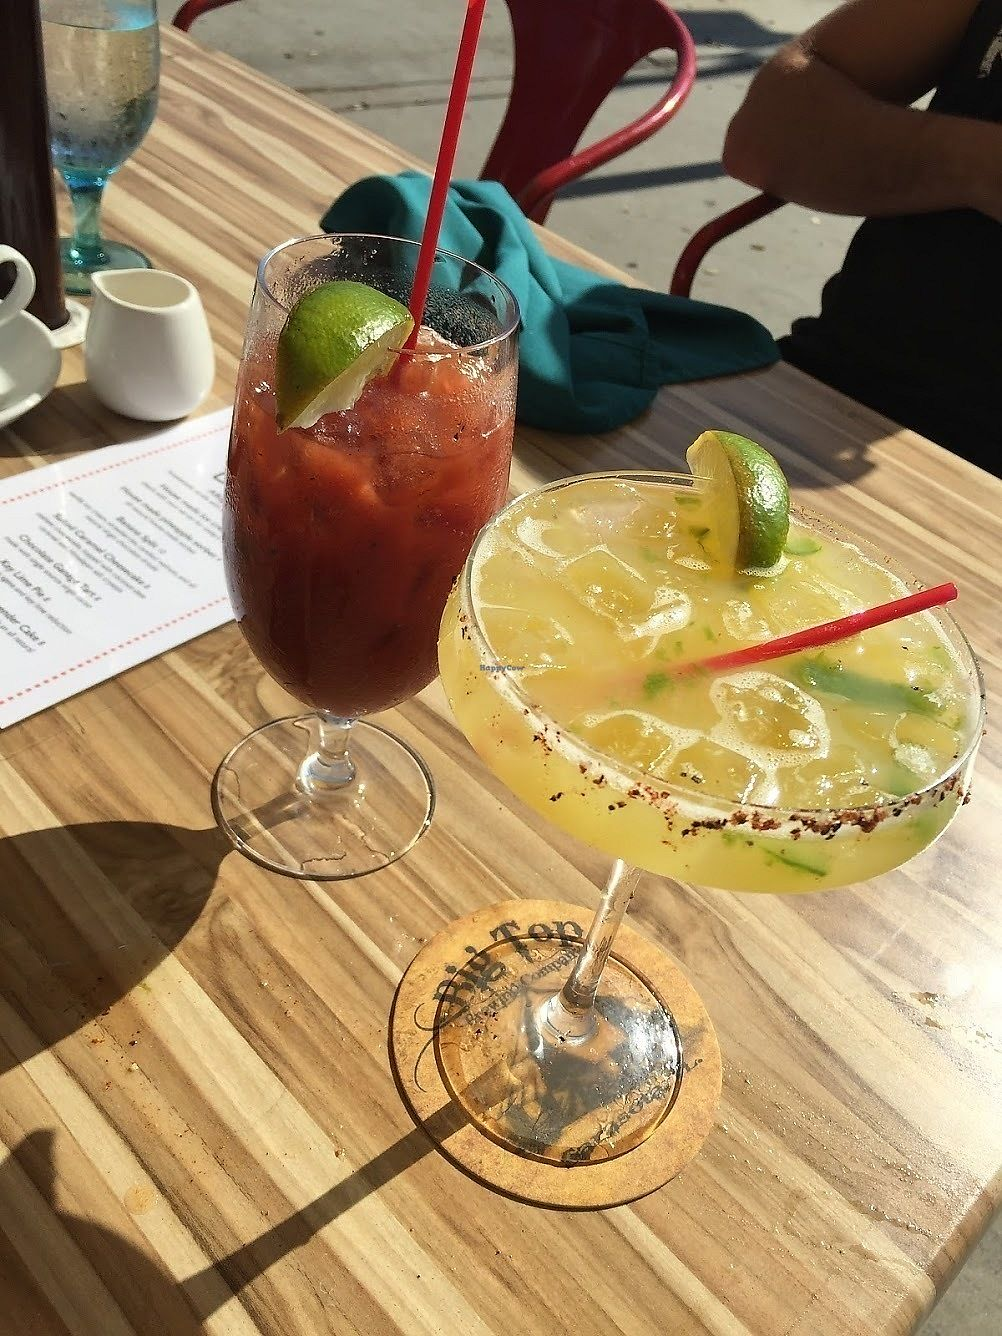 """Photo of The Cider Press Cafe   by <a href=""""/members/profile/Jamie9705"""">Jamie9705</a> <br/>Vegan adult beverages! <br/> September 13, 2017  - <a href='/contact/abuse/image/62213/304013'>Report</a>"""